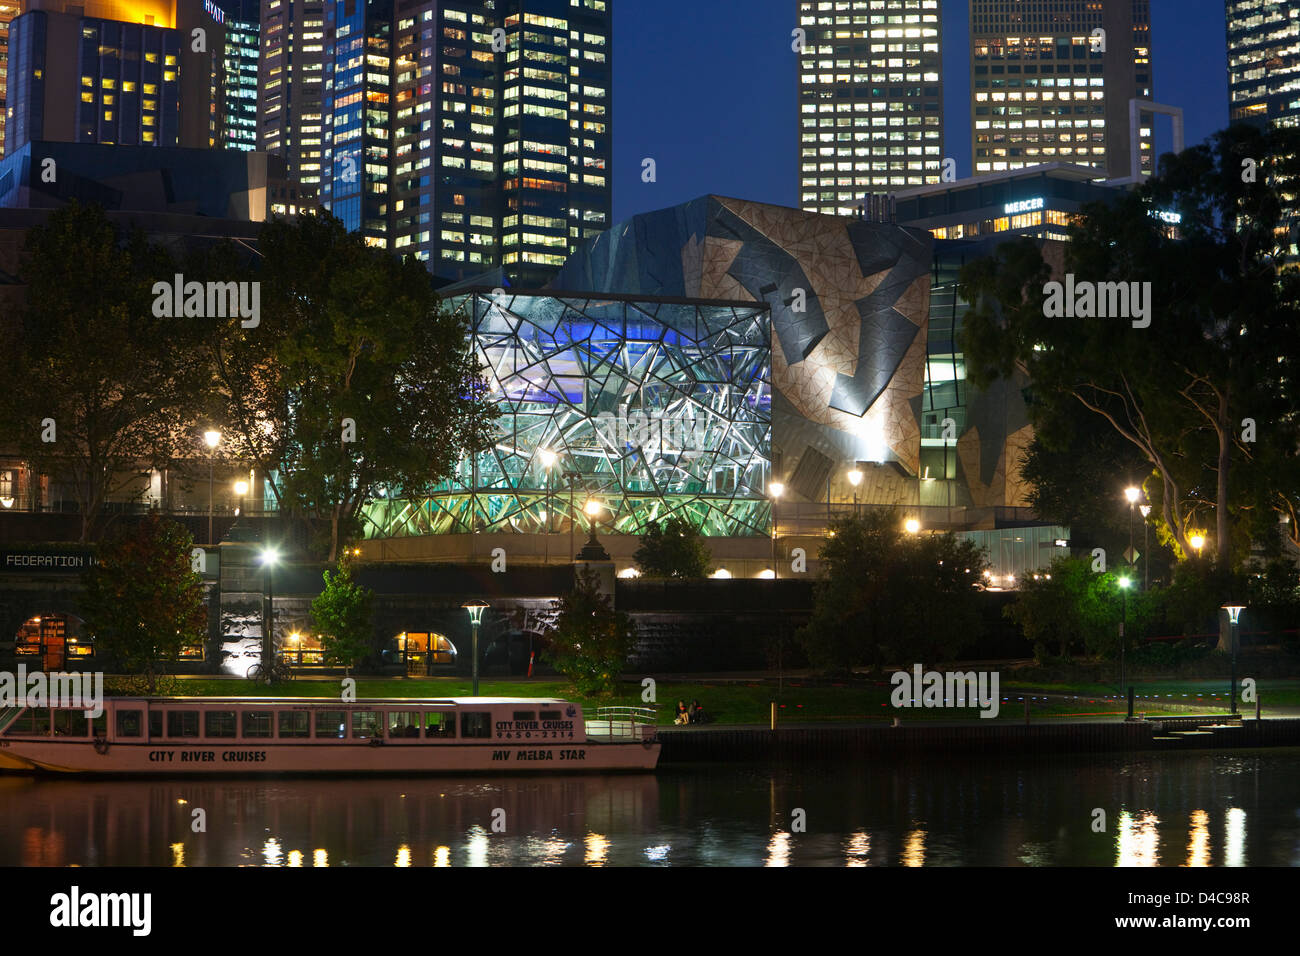 View across Yarra River to architecture of Federation Square at night. Melbourne, Victoria, Australia - Stock Image